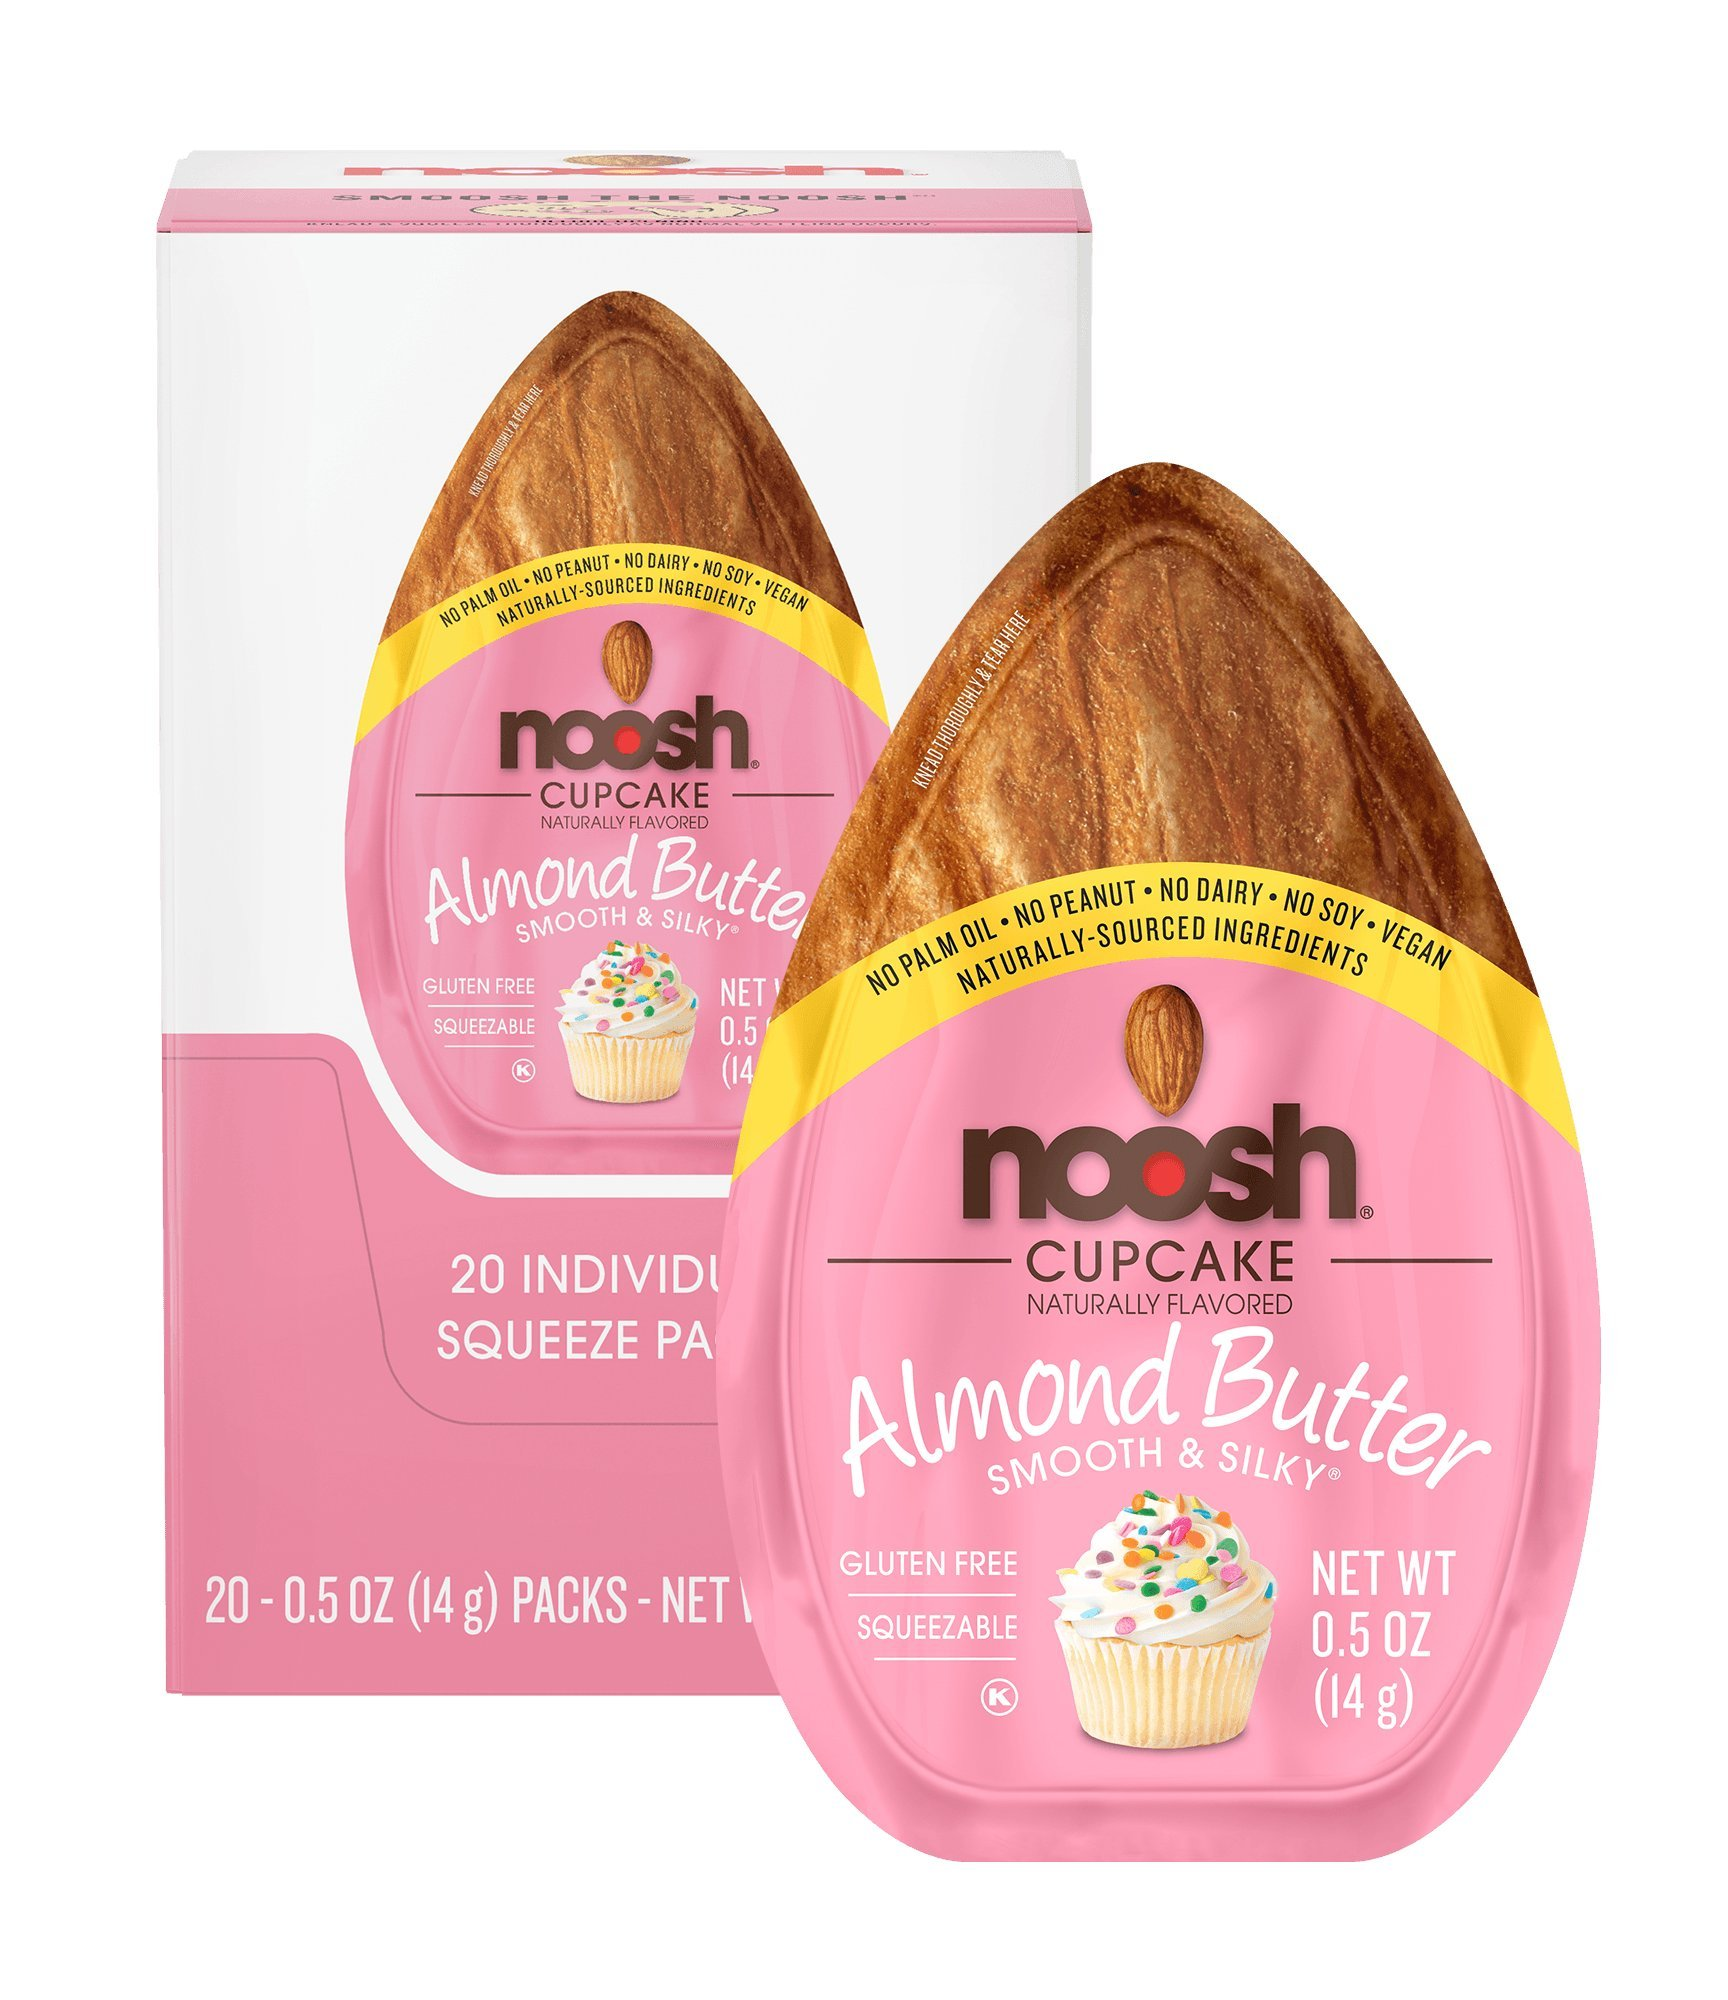 NOOSH Almond Butter Cupcake (20 Count) - All Natural, Vegan, Gluten Free, Soy Free, Dairy Free